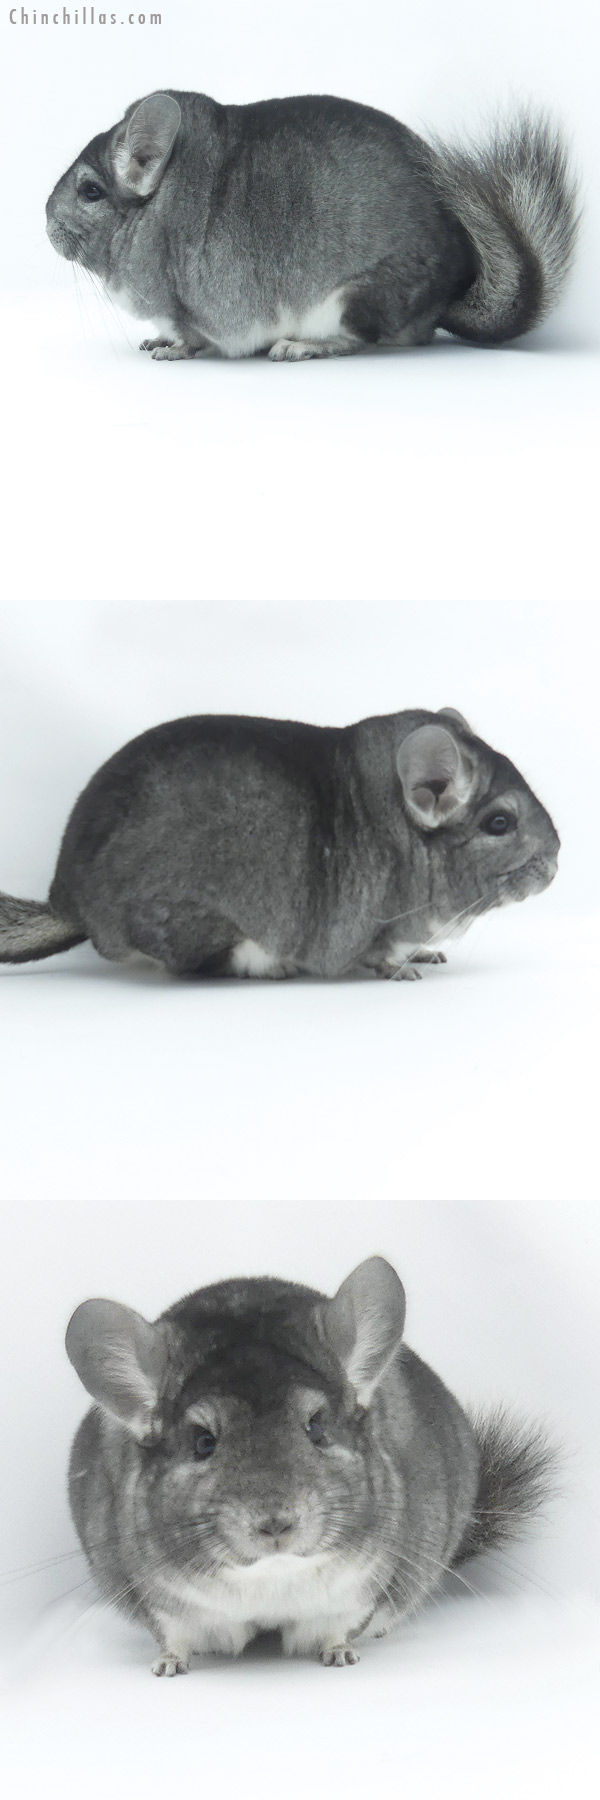 19475 Large Blocky Premium Production Quality Standard Female Chinchilla